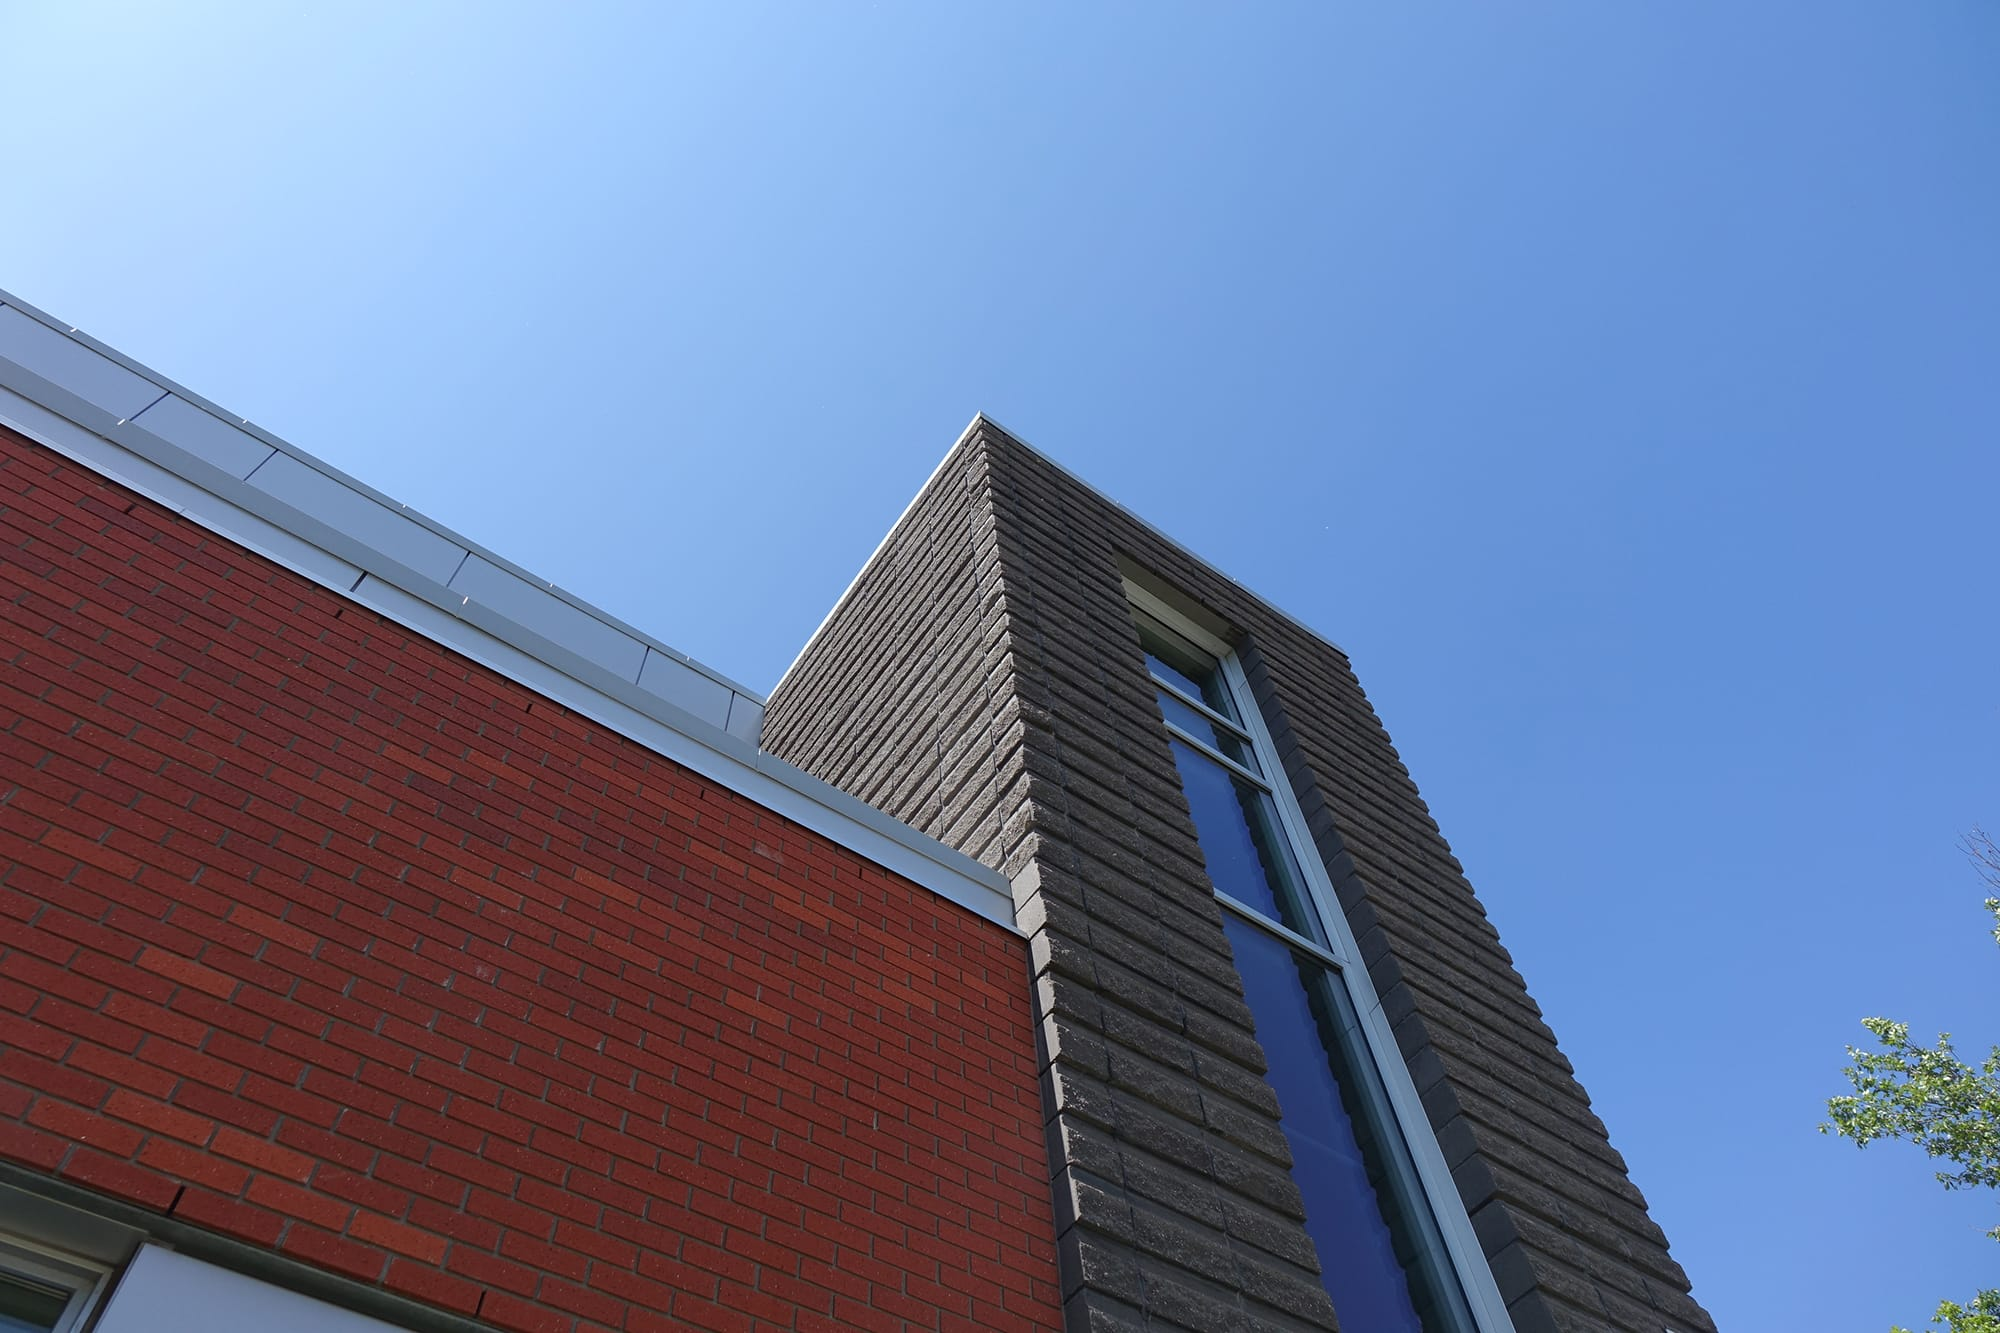 East Edmonton Health Care Centre exterior looking up towards the sky